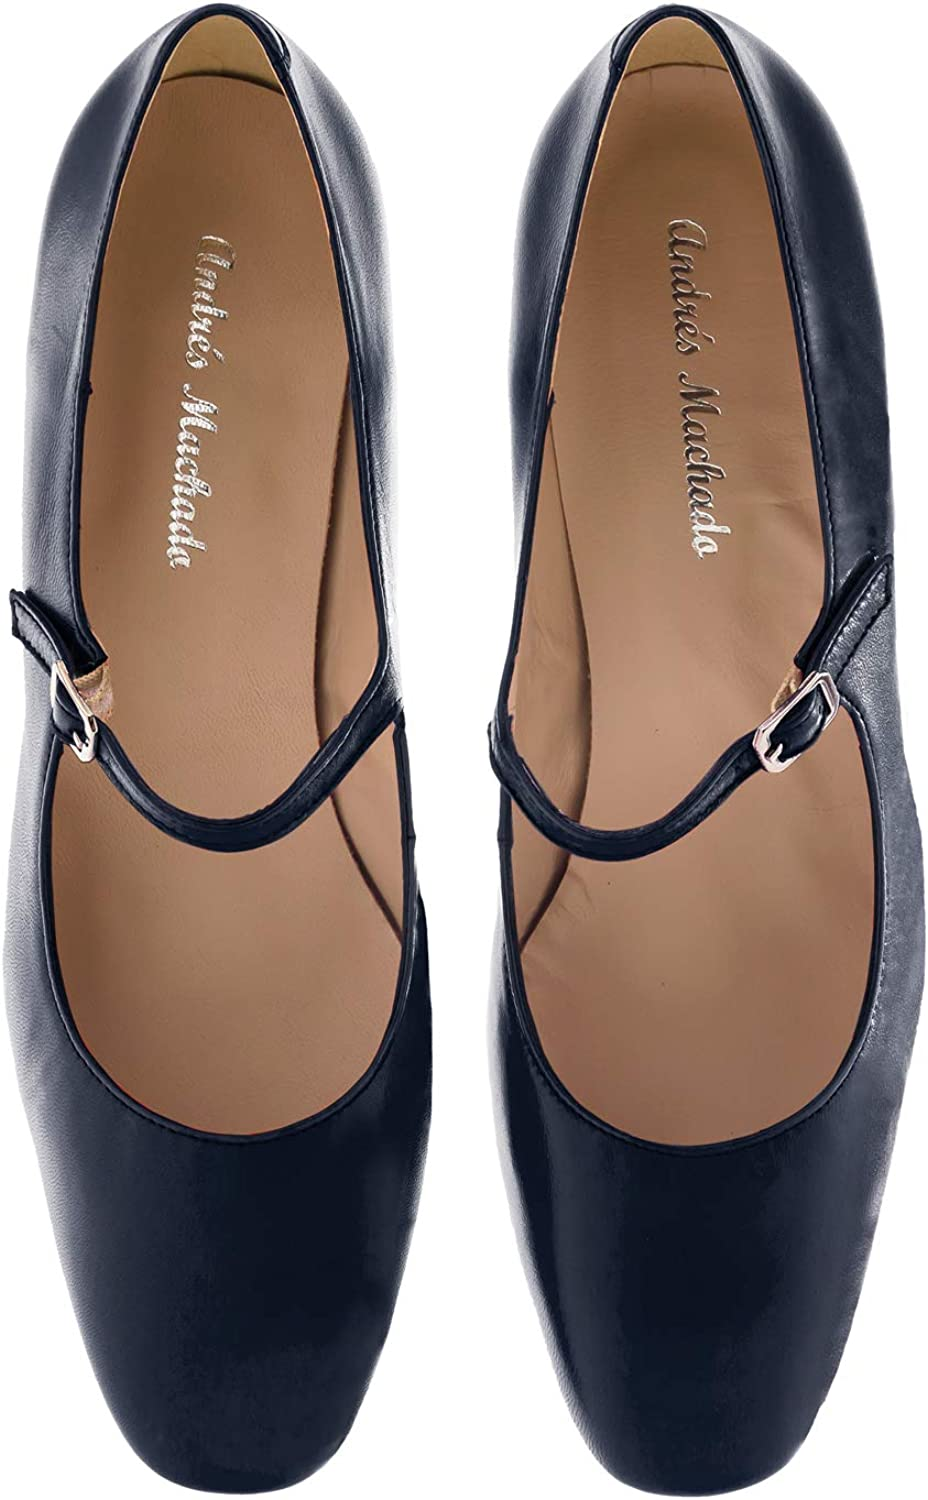 Andres Machado Dulce Heeled Mary Janes in Nappa Leather - Big Sizes: UK 8 to 10.5 / EU 42 to 45 Made in Spain Navy Nappa Leather